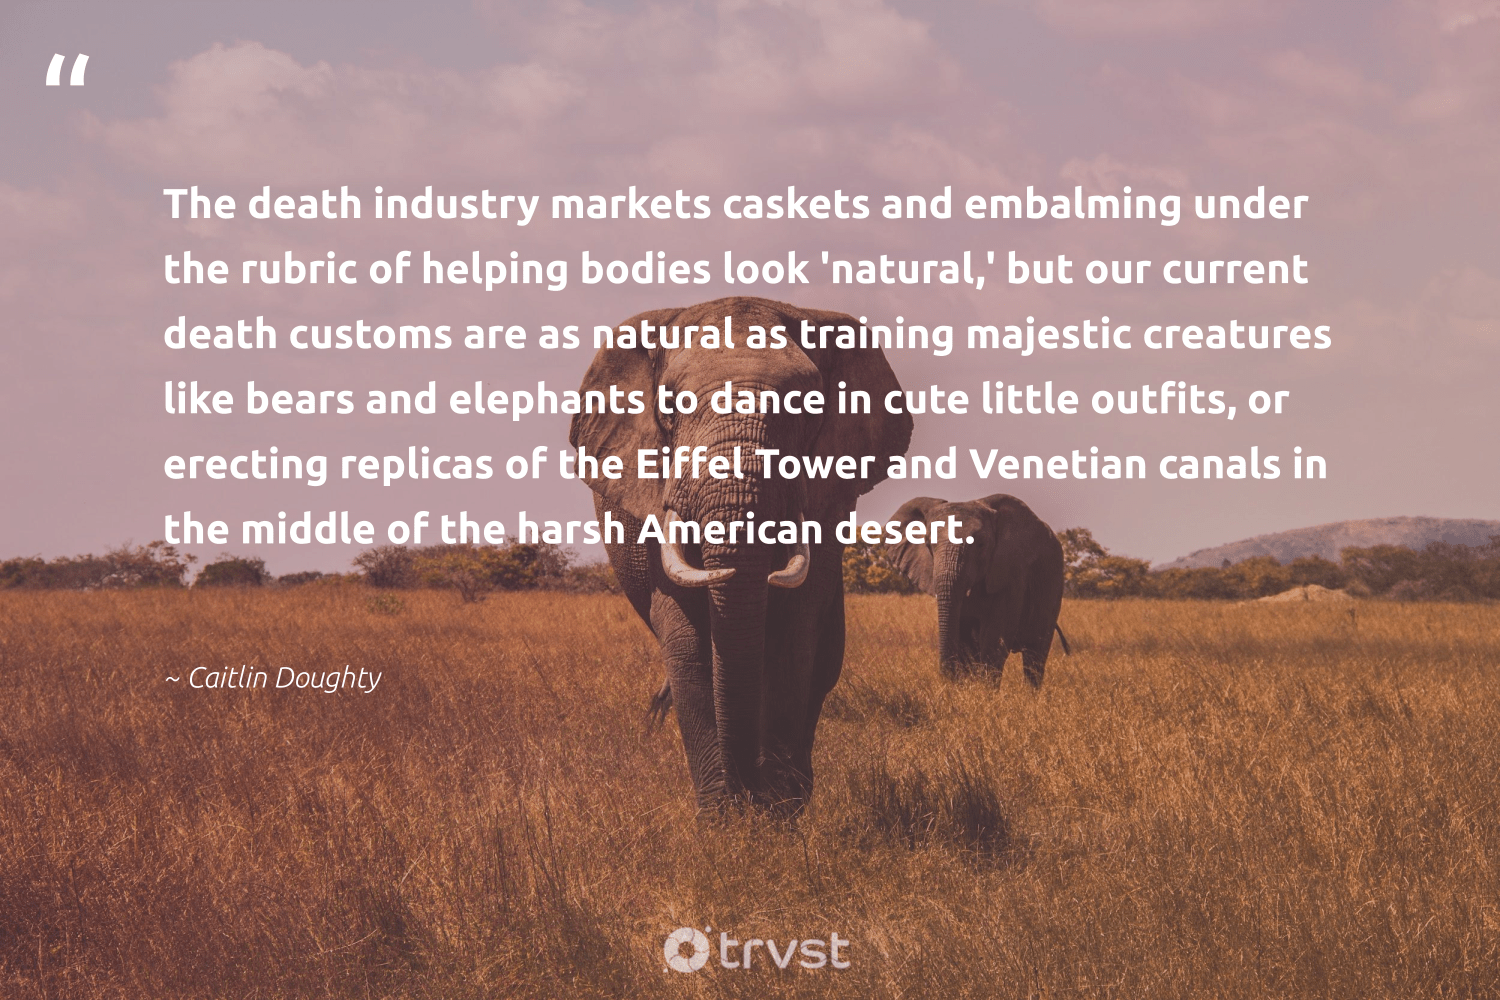 """""""The death industry markets caskets and embalming under the rubric of helping bodies look 'natural,' but our current death customs are as natural as training majestic creatures like bears and elephants to dance in cute little outfits, or erecting replicas of the Eiffel Tower and Venetian canals in the middle of the harsh American desert.""""  - Caitlin Doughty #trvst #quotes #natural #elephants #endangered #bethechange #wildlife #dogood #elephantlove #socialchange #elephant #takeaction"""